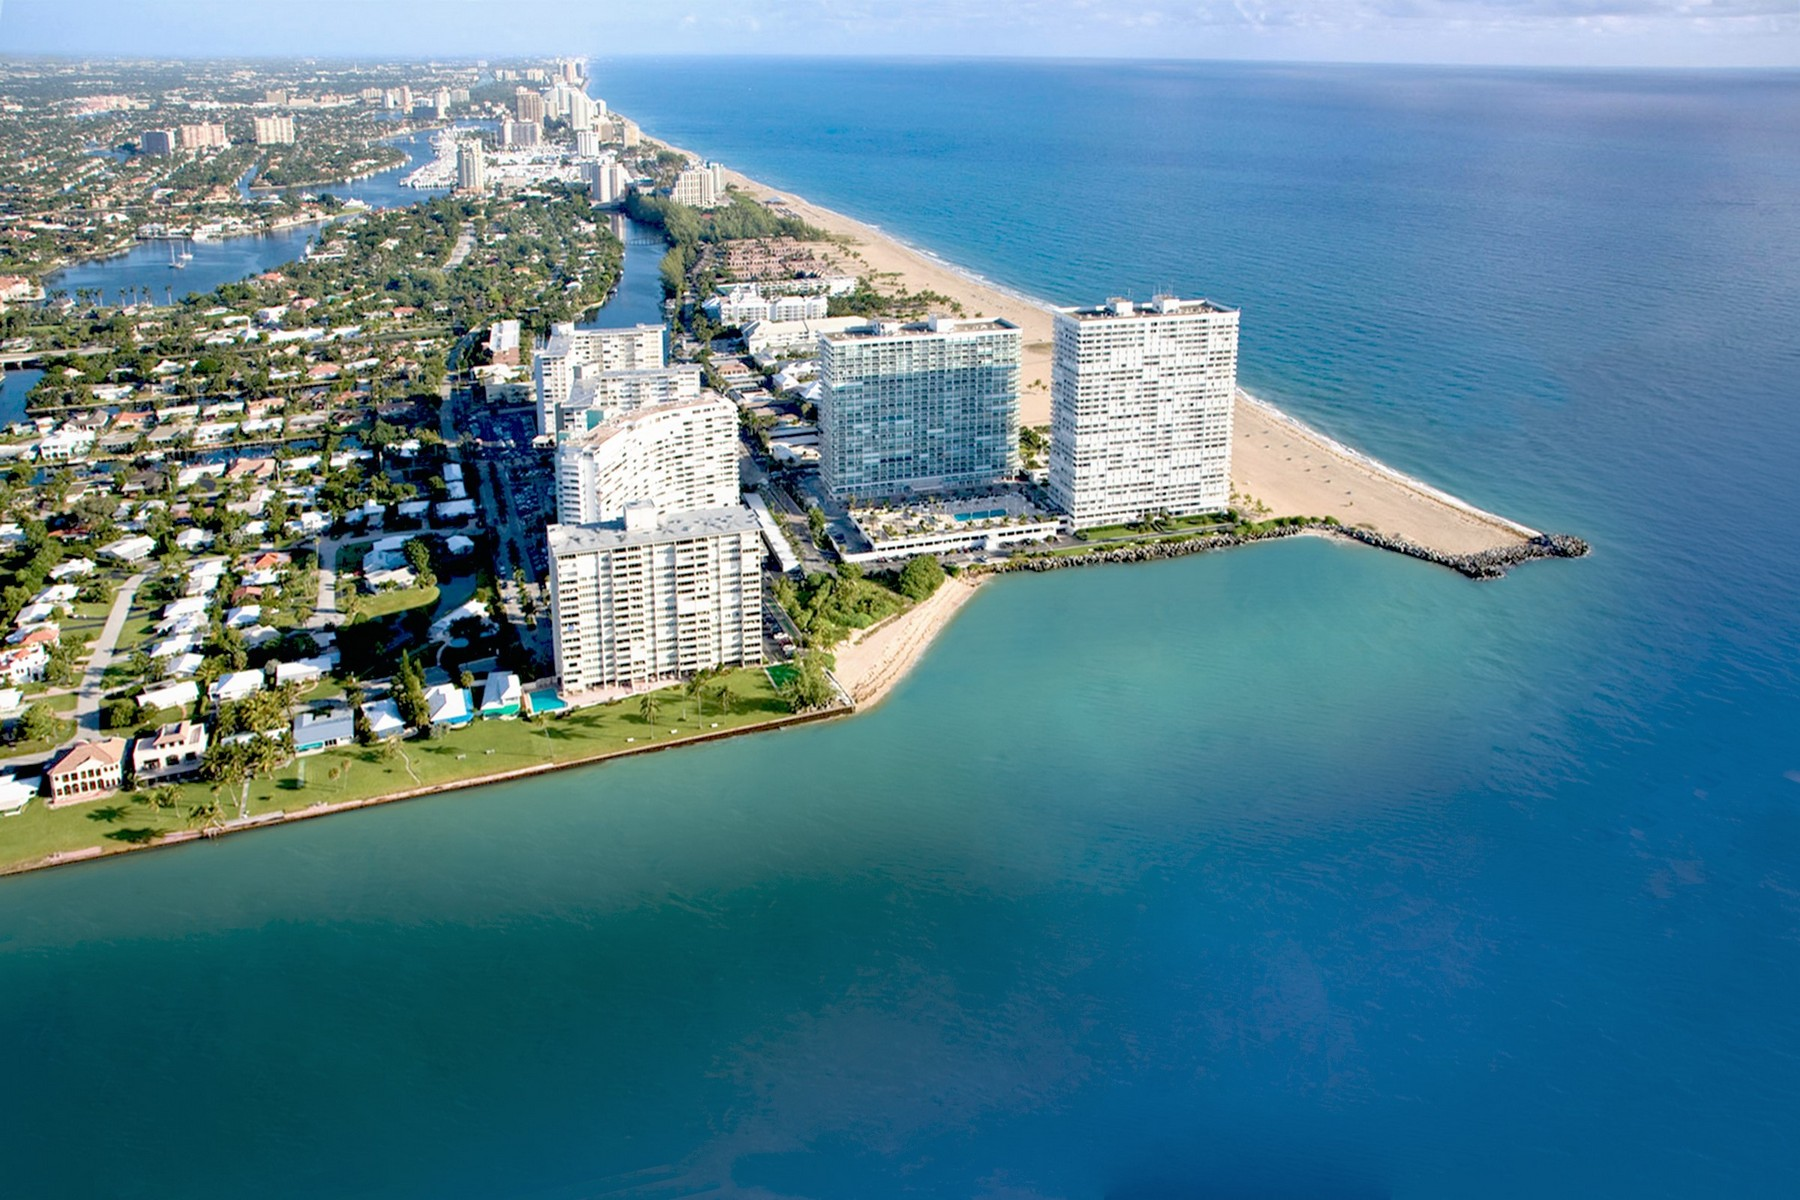 Condominium for Sale at Point of Americas 2200 S Ocean Ln. #2403-2404 Fort Lauderdale, Florida 33316 United States